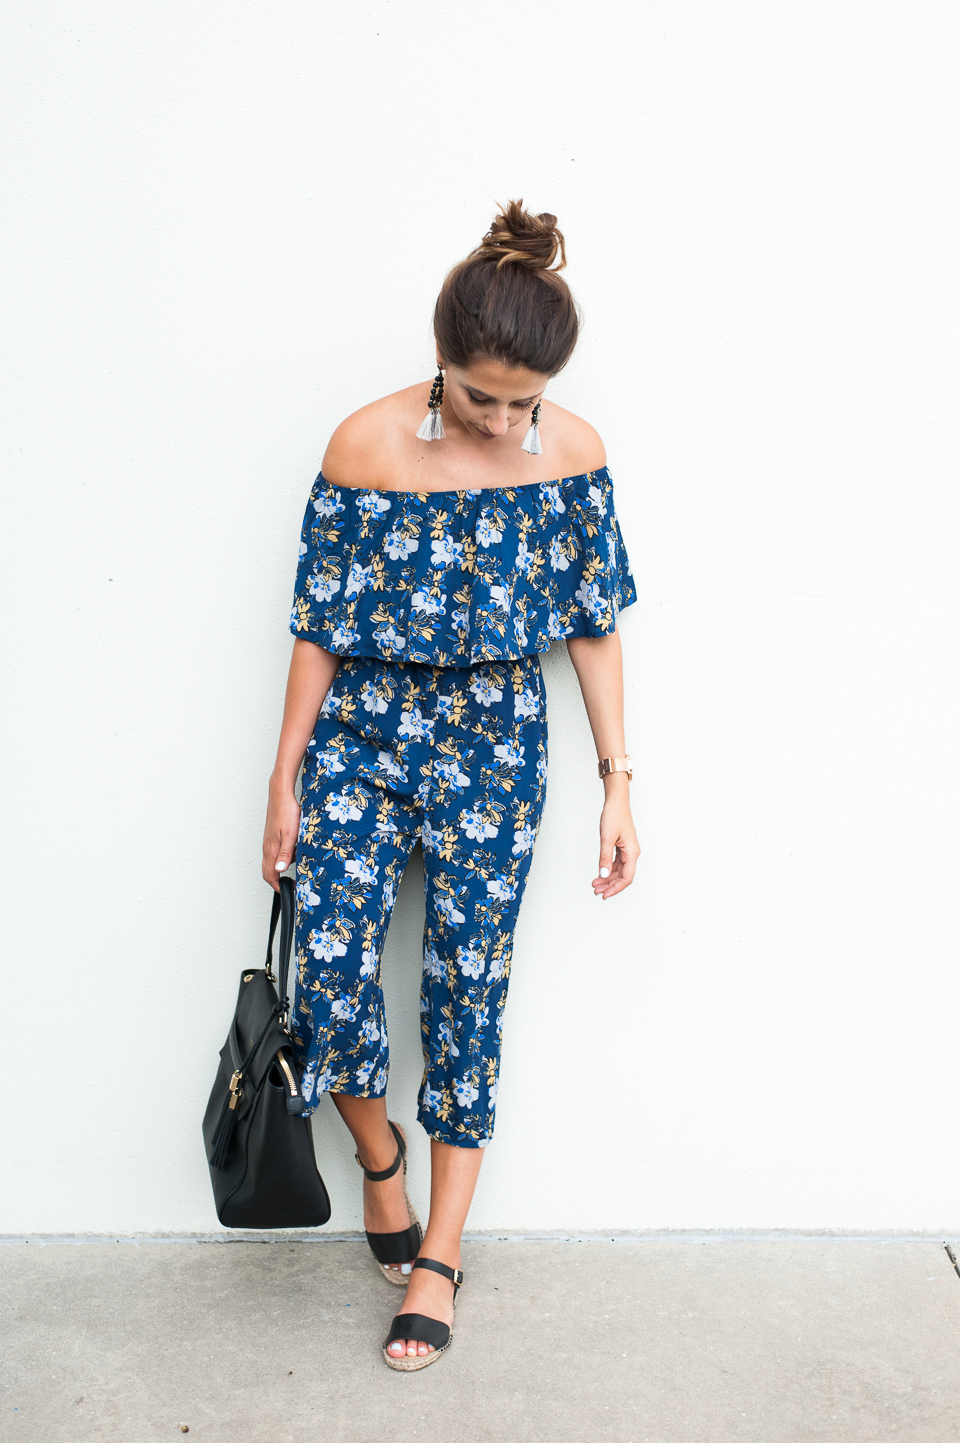 Dress Up Buttercup | Houston Fashion Blog - Dede Raad | Floral Jumper